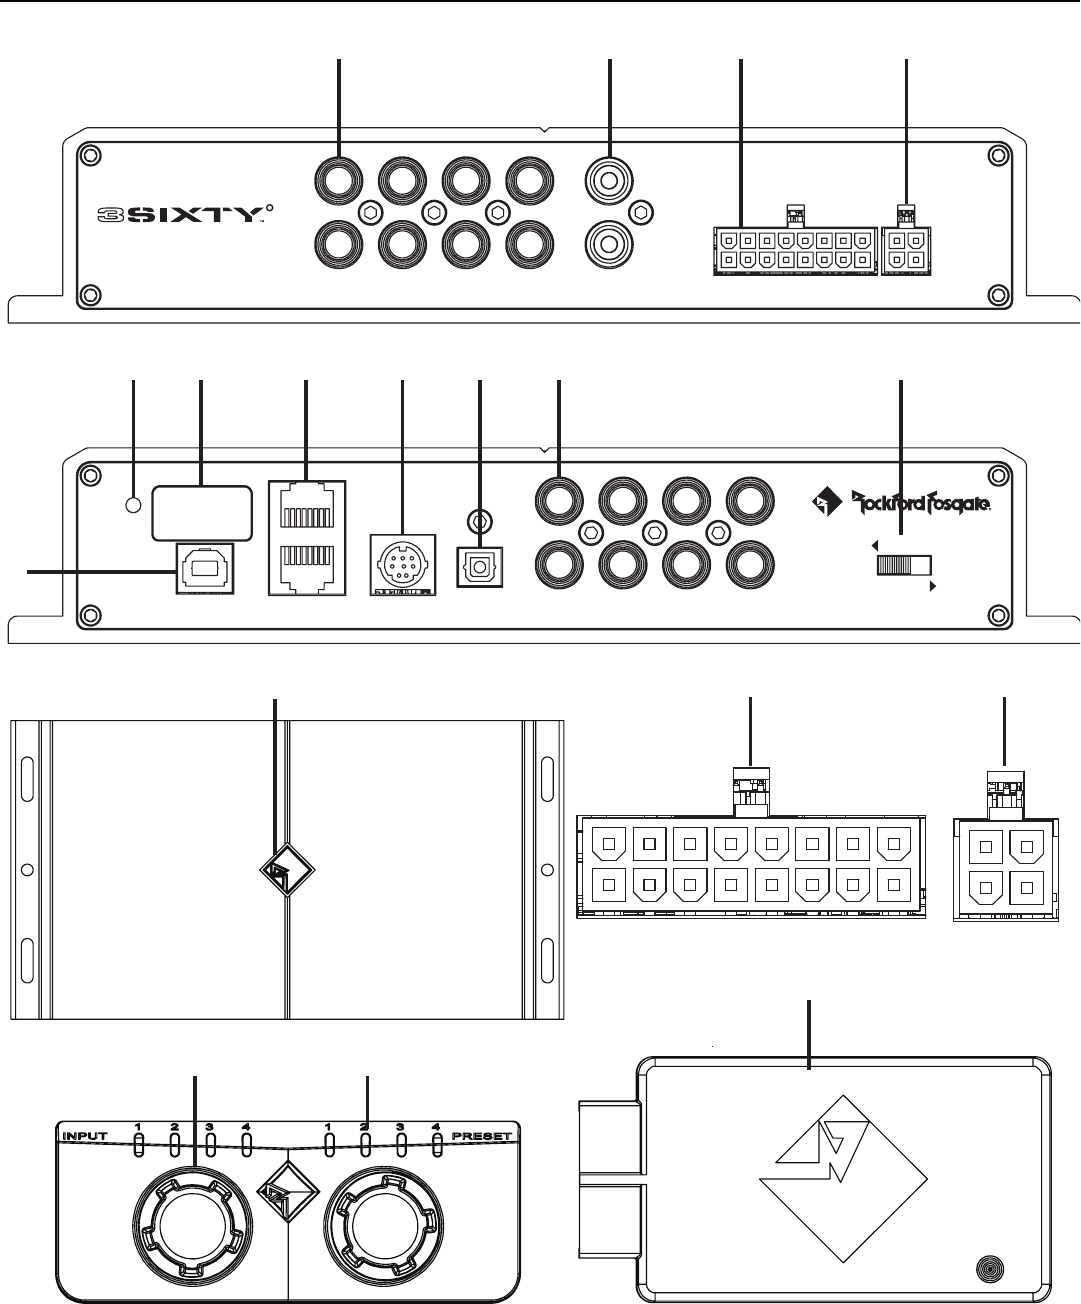 Rockford Fosgate Capacitor Wiring Diagram from www.libble.eu